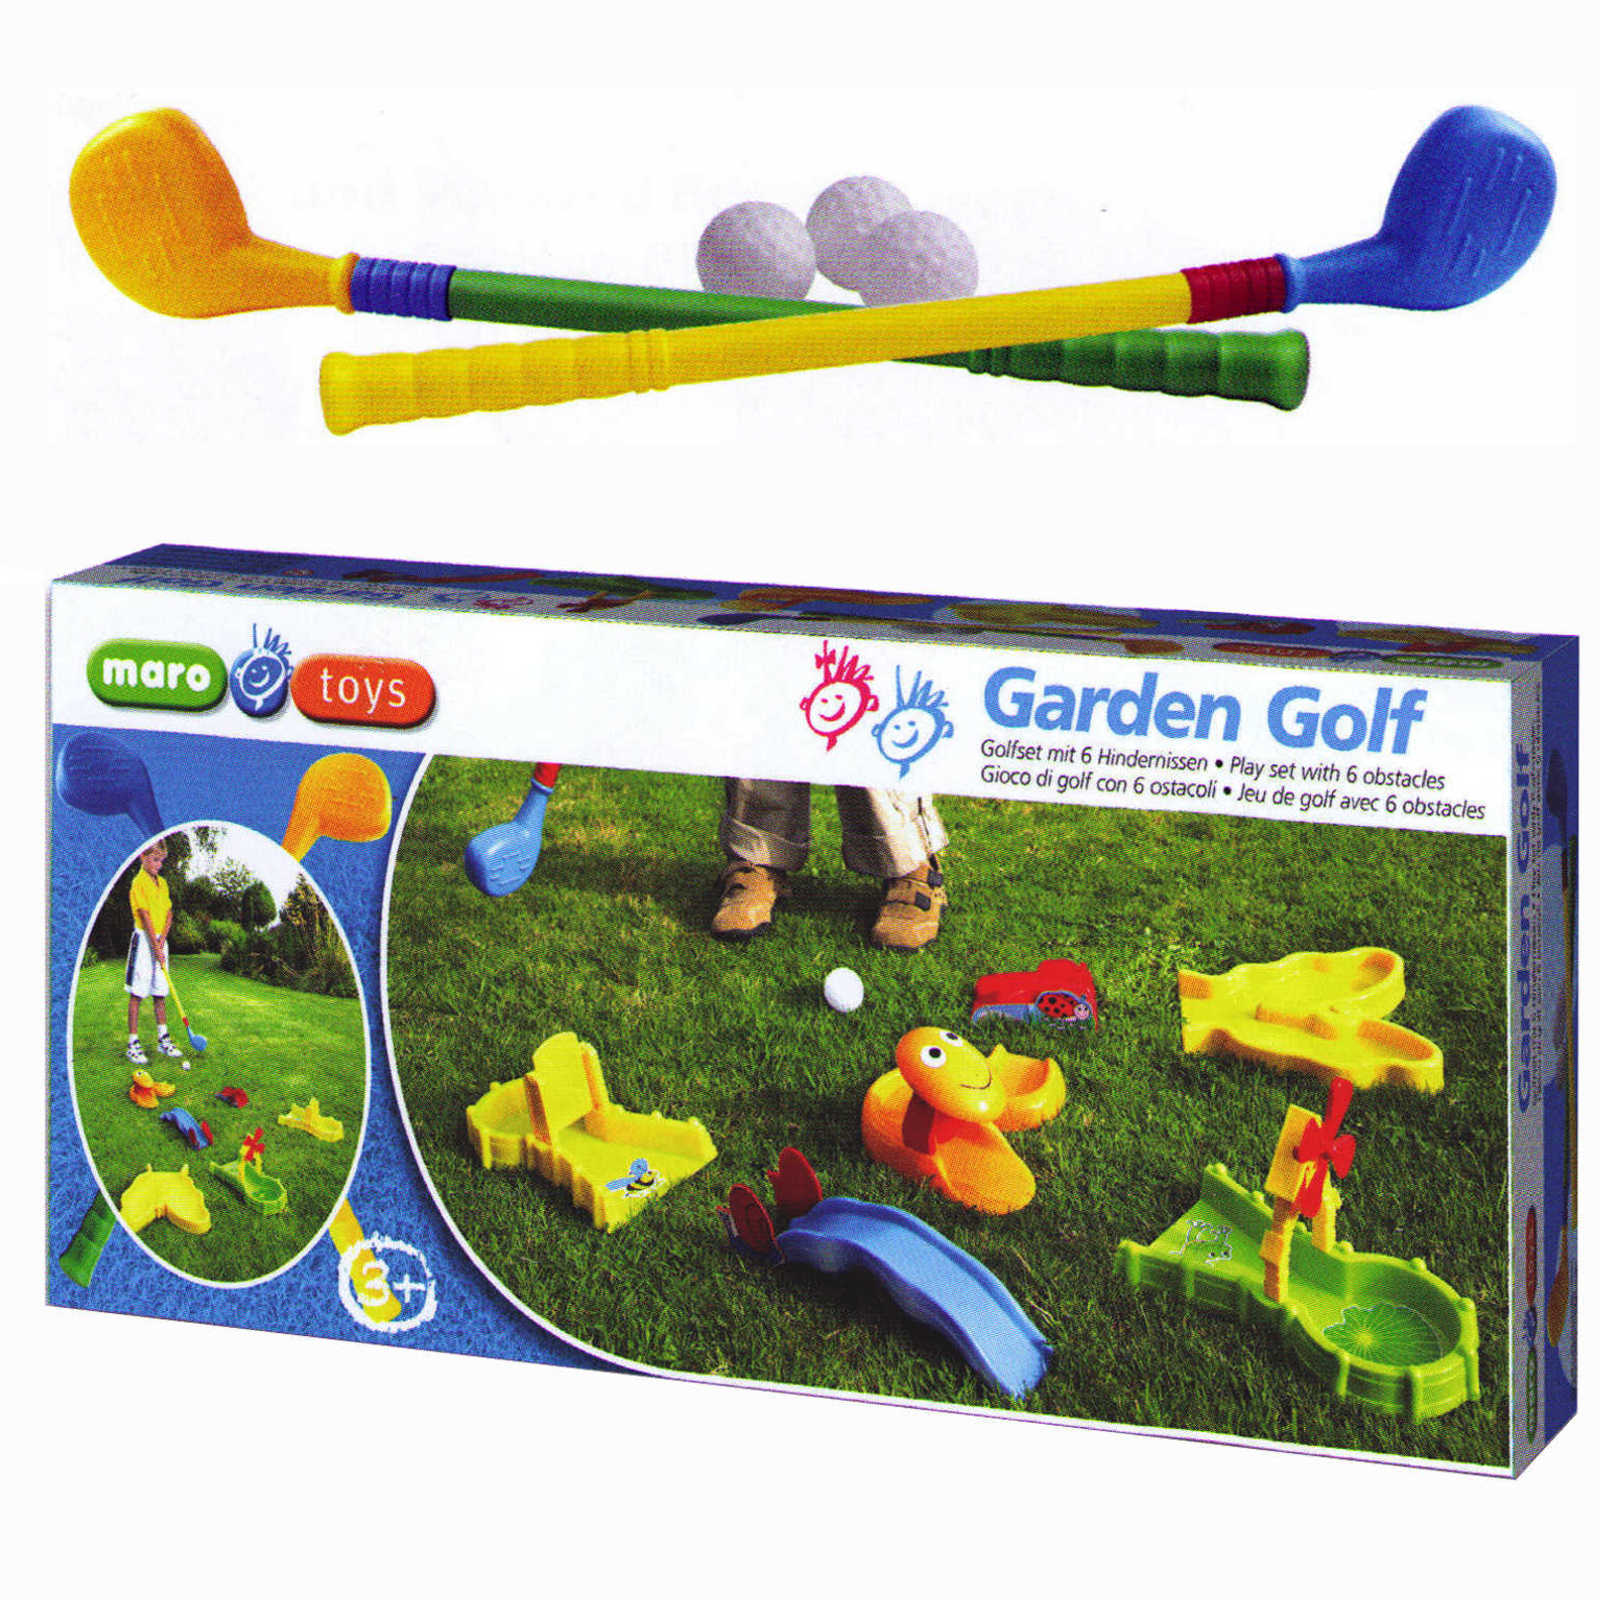 maro toys garten golf minigolf indoor golfset 6 hindernisse outdoor golfsch ger ebay. Black Bedroom Furniture Sets. Home Design Ideas